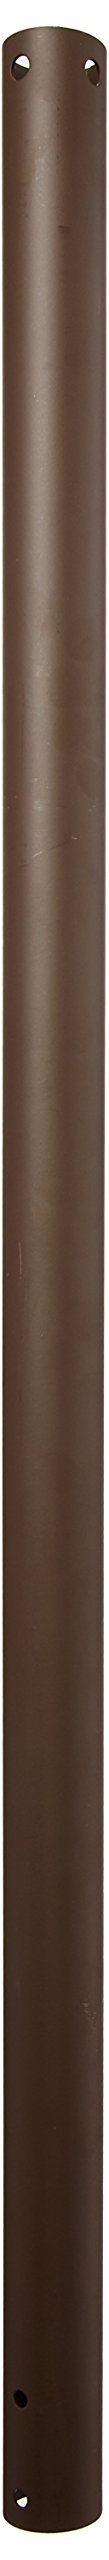 Fanimation EP48OB Extension Pole, 48-Inch, Oil-Rubbed Bronze by Fanimation